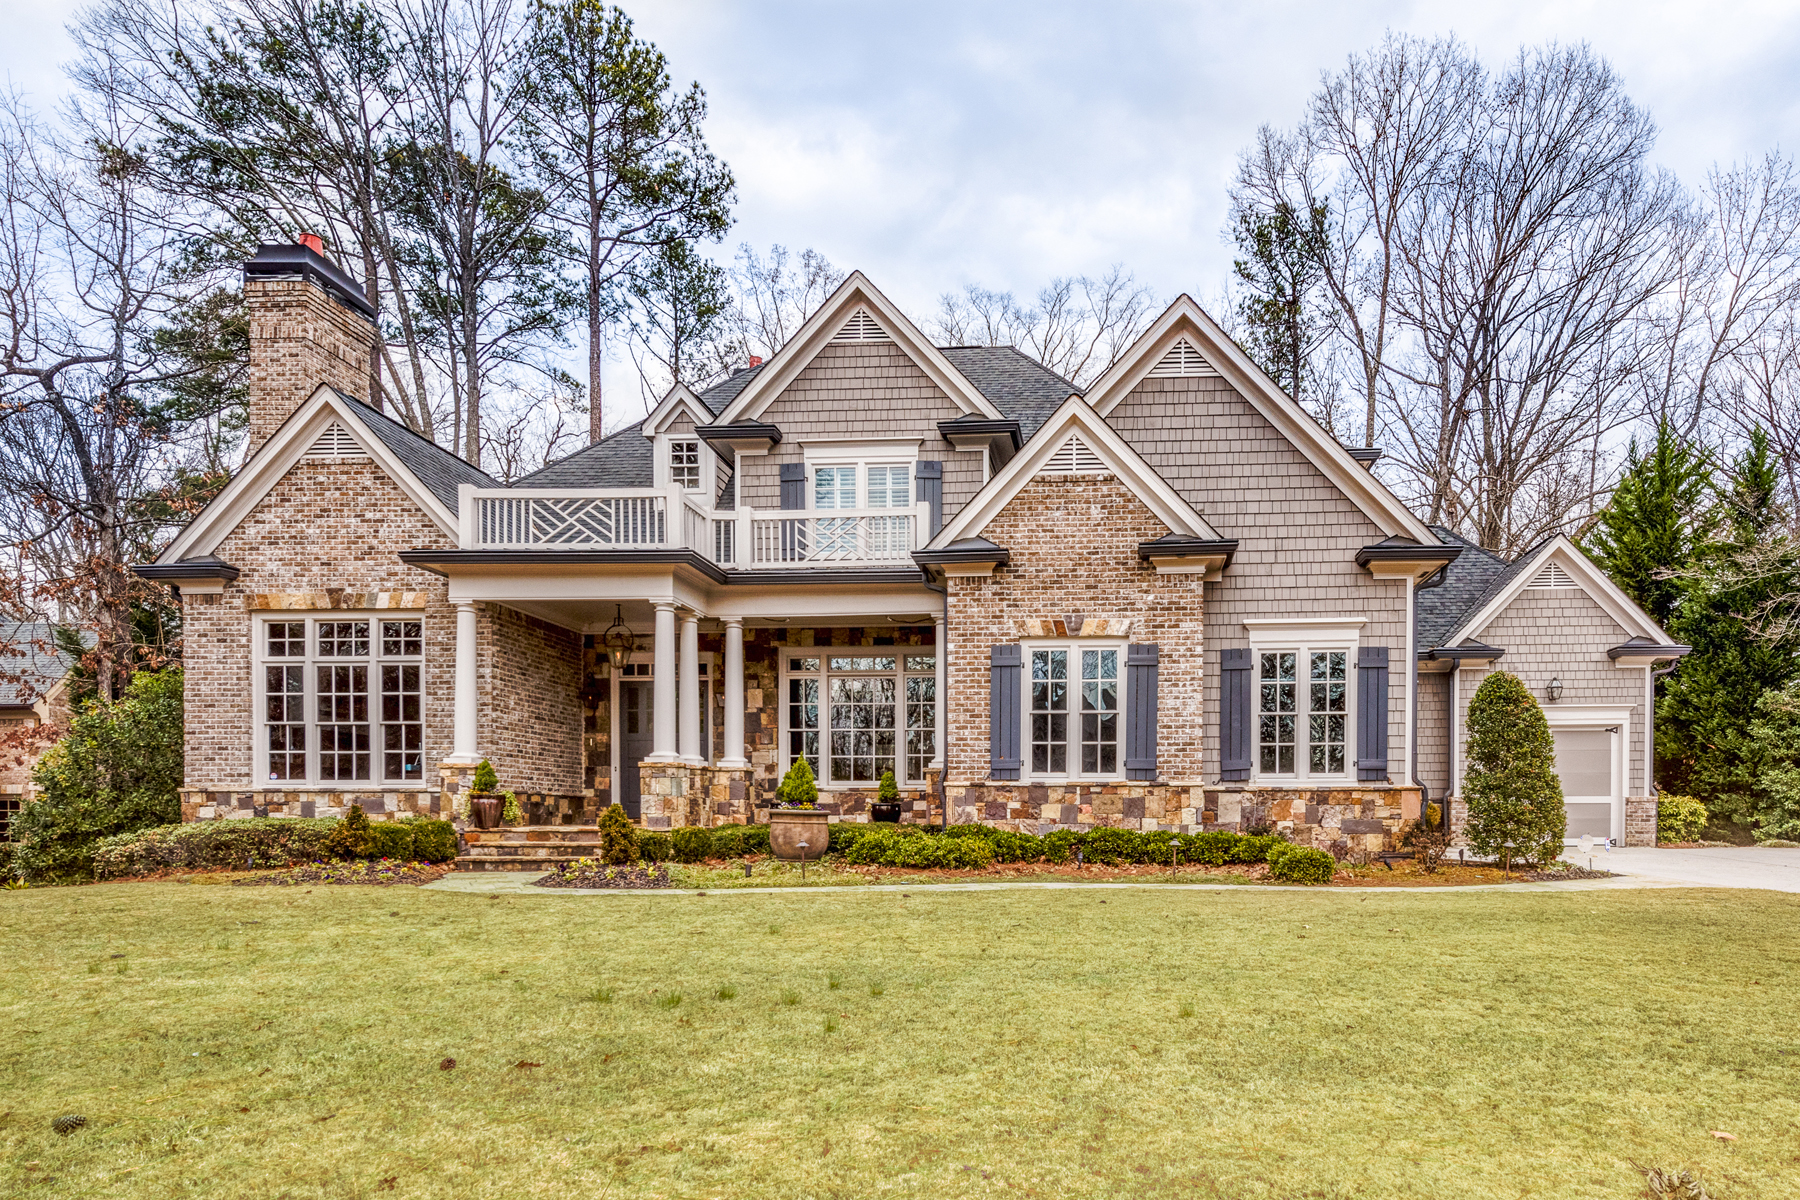 Single Family Home for Active at Custom Built Traditional 635 Colebrook Court Atlanta, Georgia 30327 United States